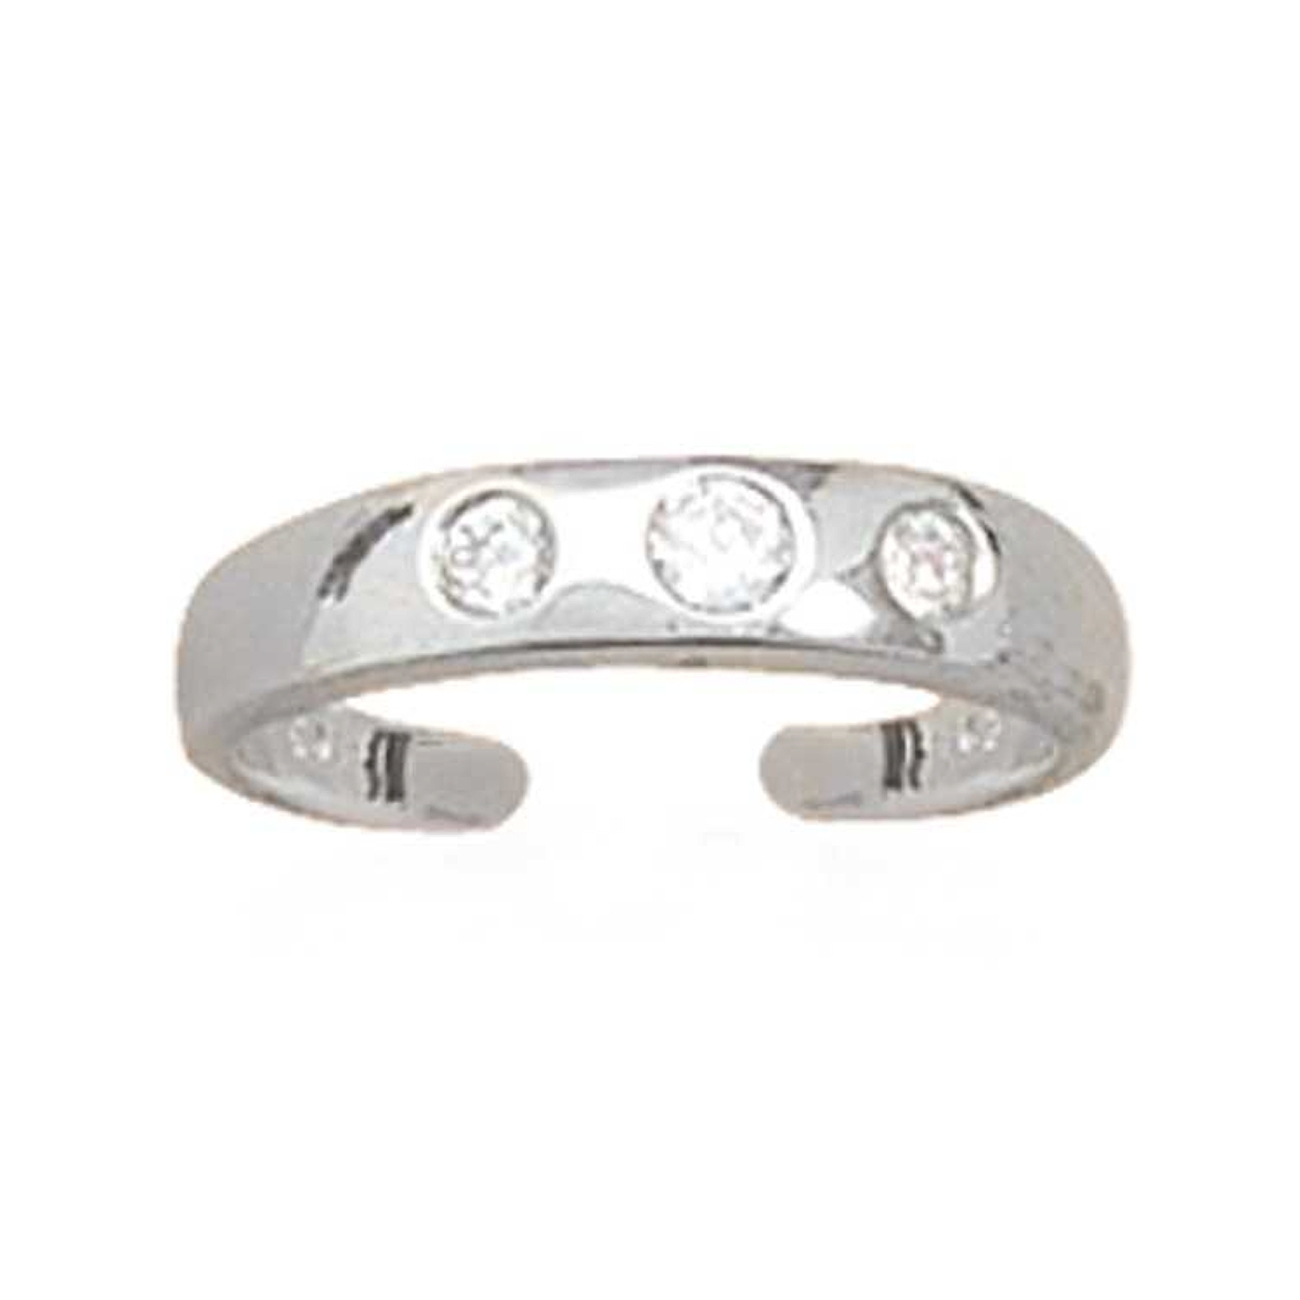 Three Cubic Zirconia Stones Plain Band Adjustable Toe Ring